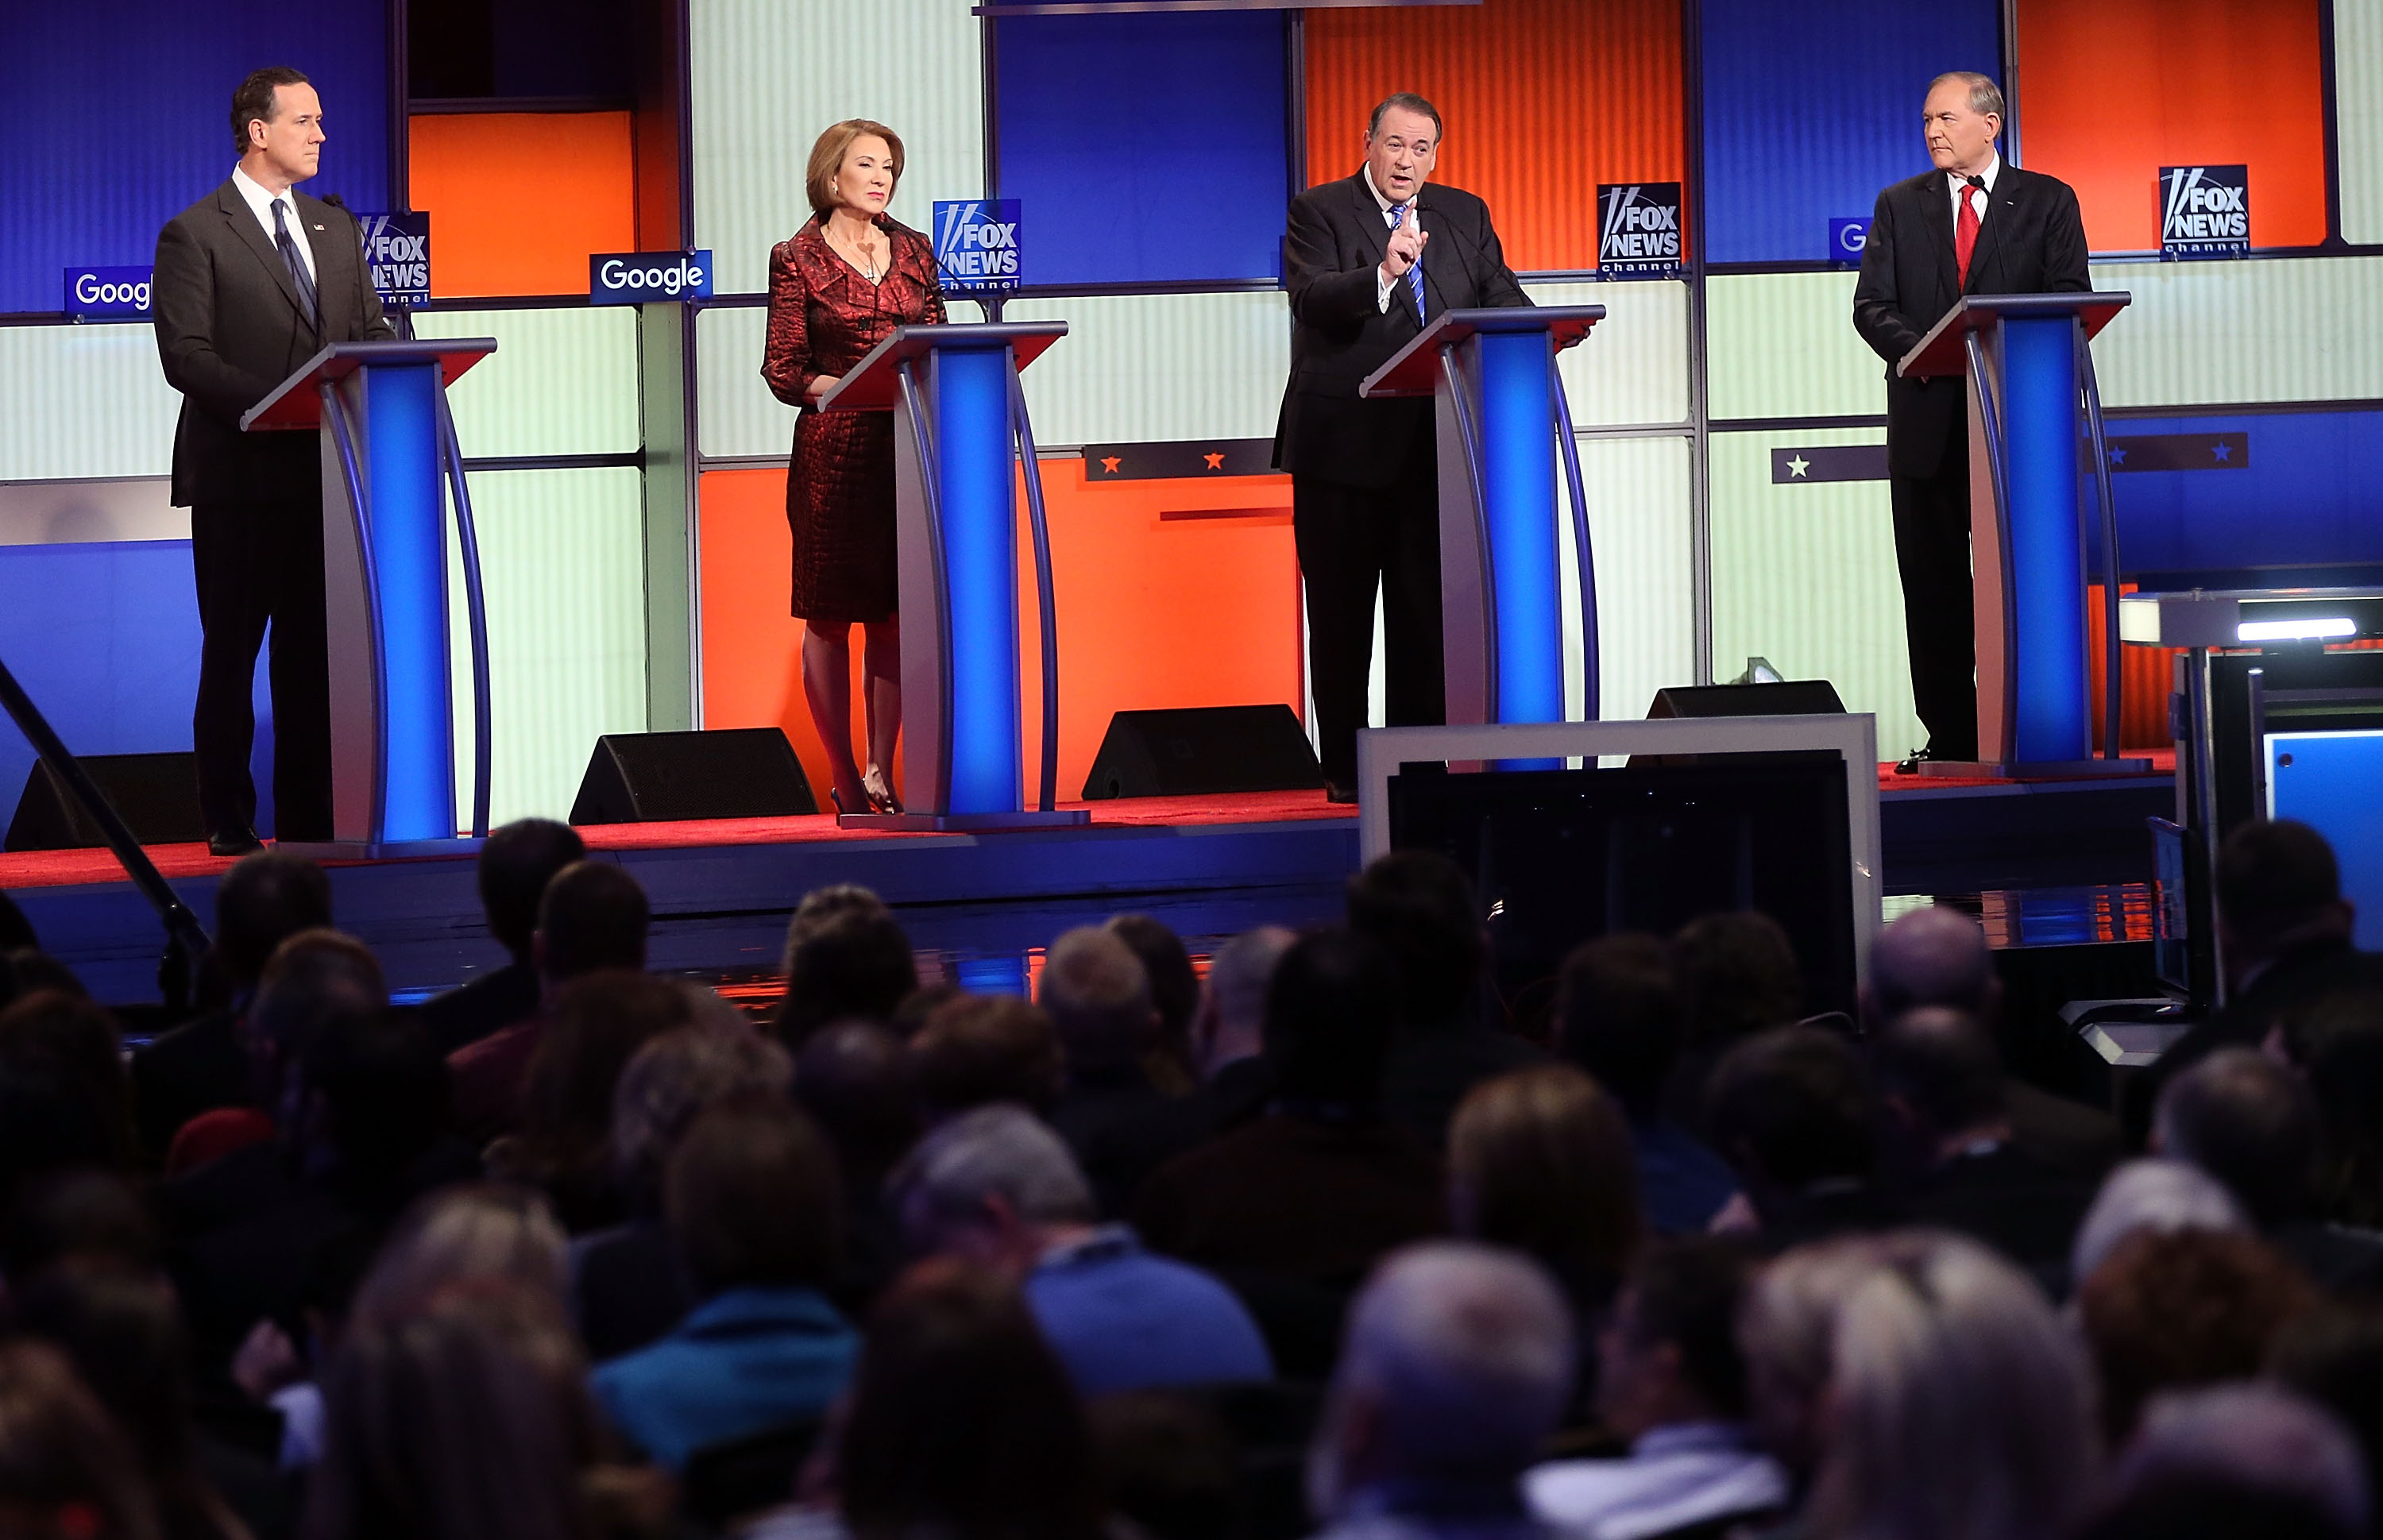 Republican presidential candidates (L-R) Rick Santorum, Carly Fiorina, Mike Huckabee and Jim Gilmore participate in the Fox News - Google GOP Debate January 28, 2016 at the Iowa Events Center in Des Moines, Iowa. Residents of Iowa will vote for the Republican nominee at the caucuses on February 1.